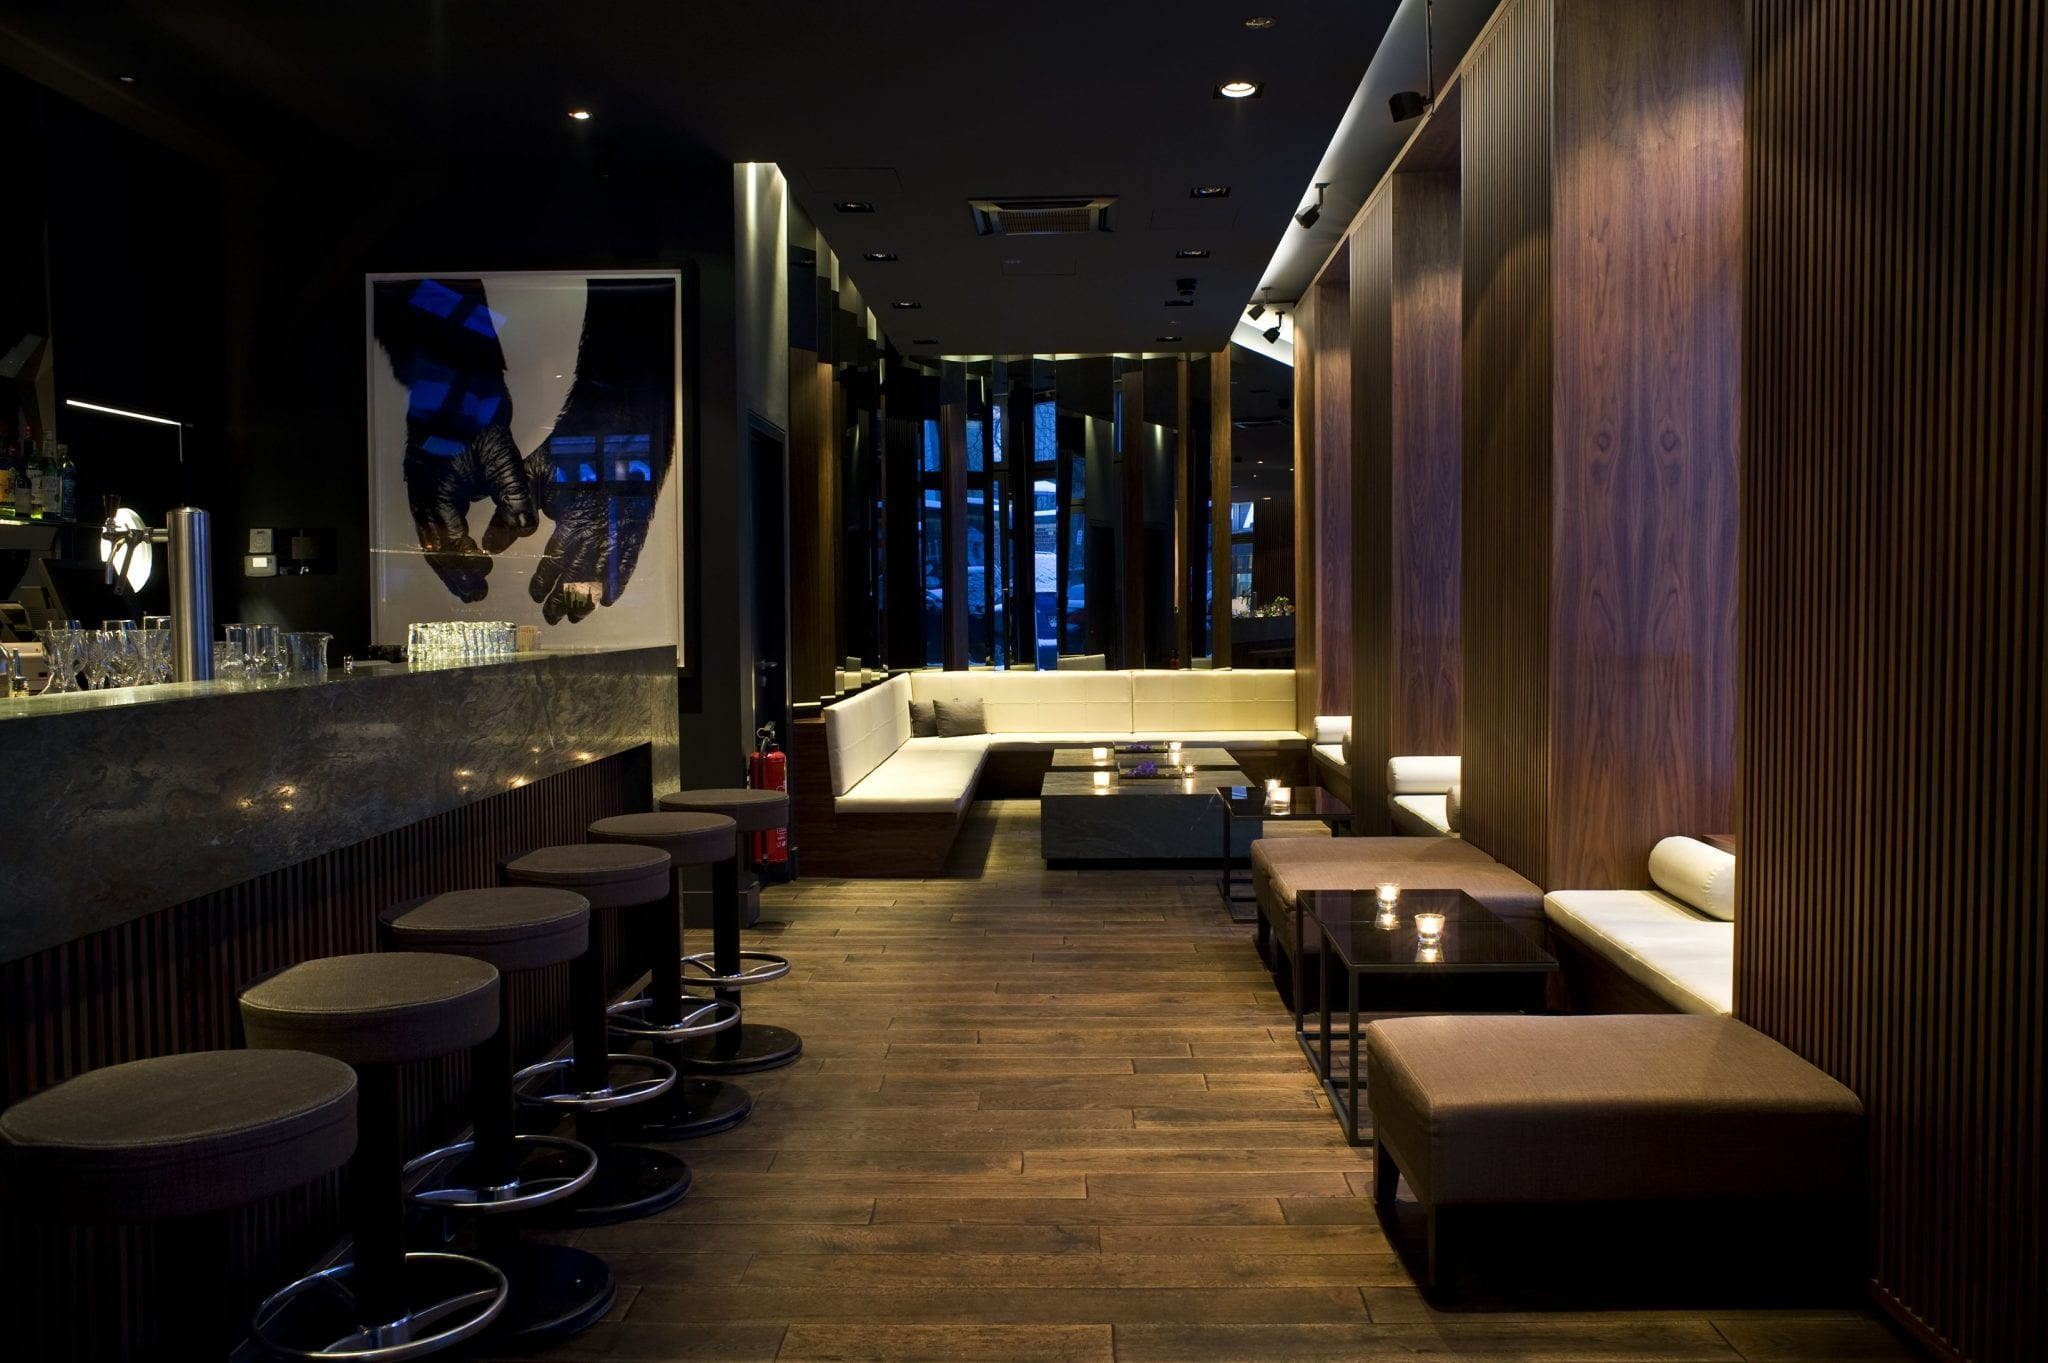 hotelbar des jahres 2013 amano bar berlin mixology. Black Bedroom Furniture Sets. Home Design Ideas